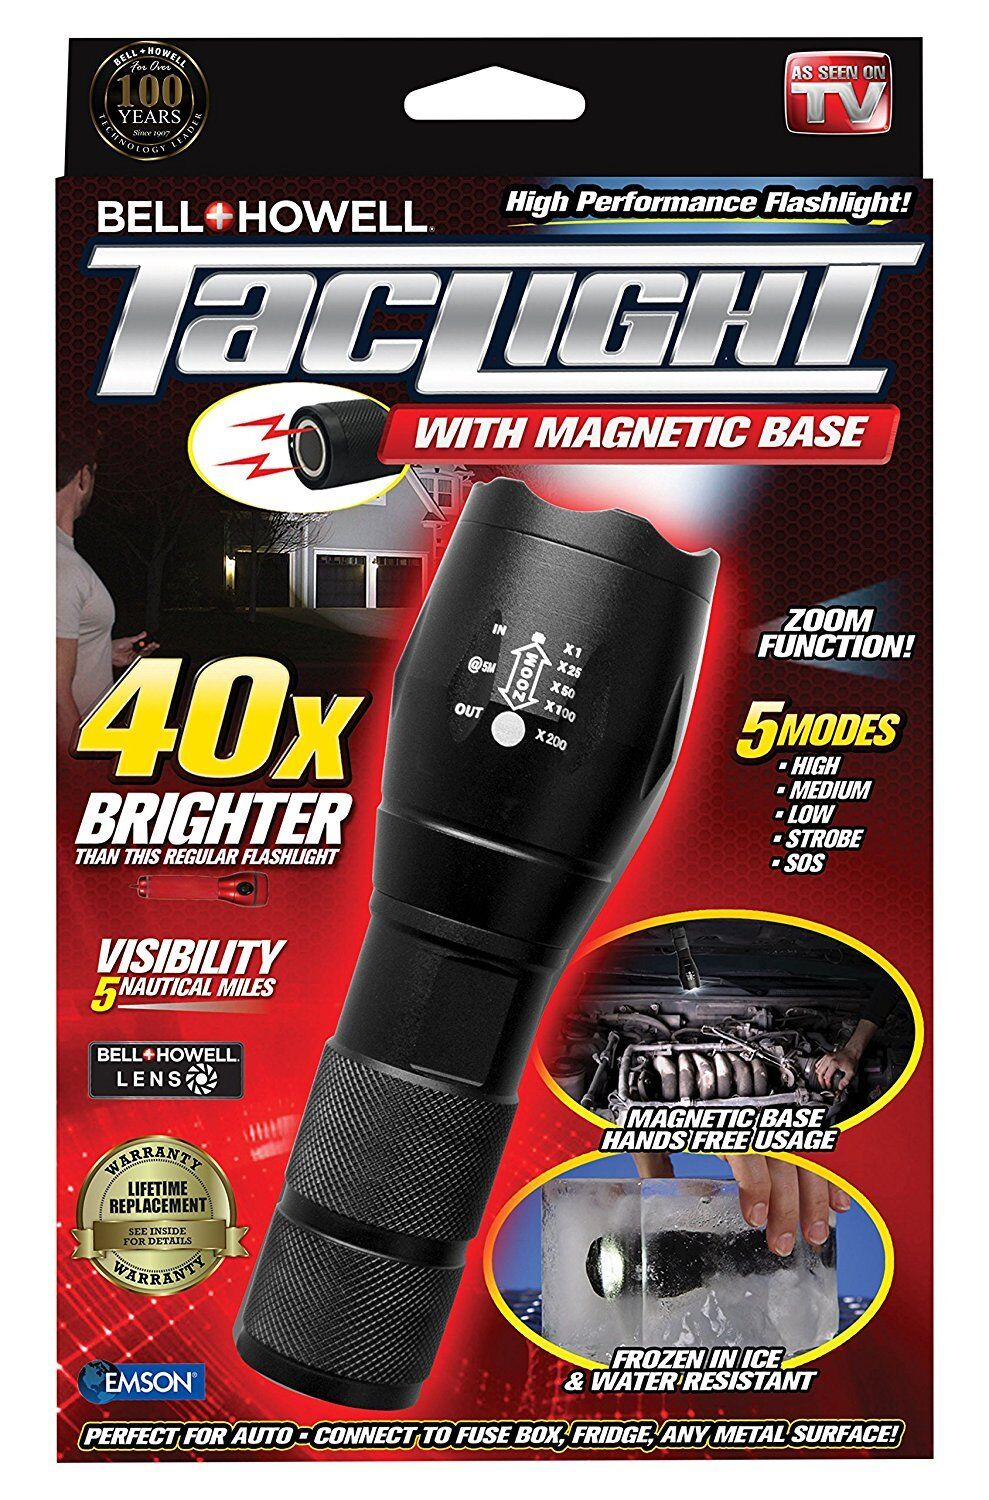 Bell and Howell Super Bright Tactical LED Flashlight with Magnetic Base – NEW!